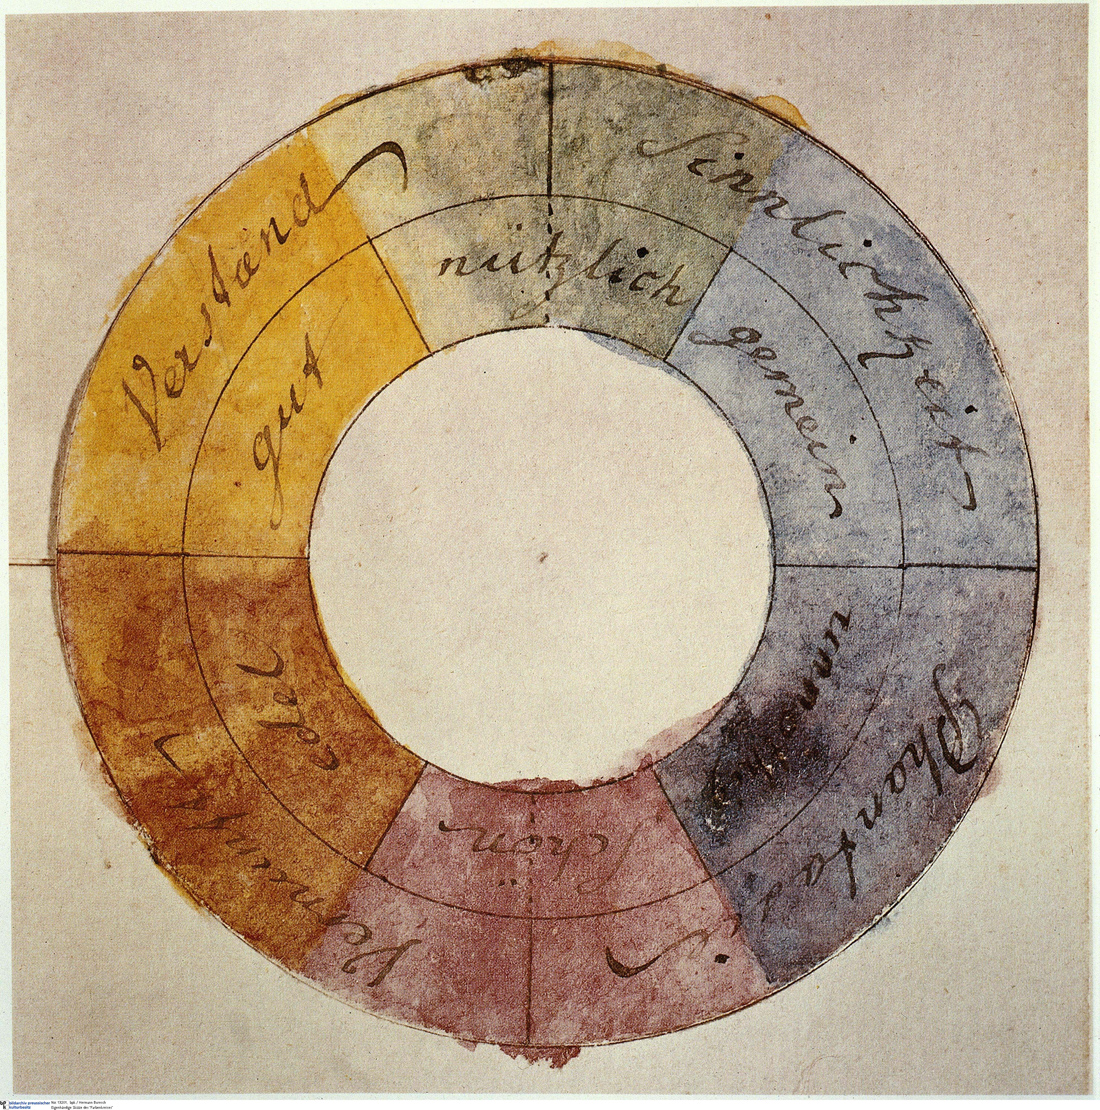 Color circle, by Johann Wolfgang von Goethe, 1809. Goethe House, Frankfurt, Germany.